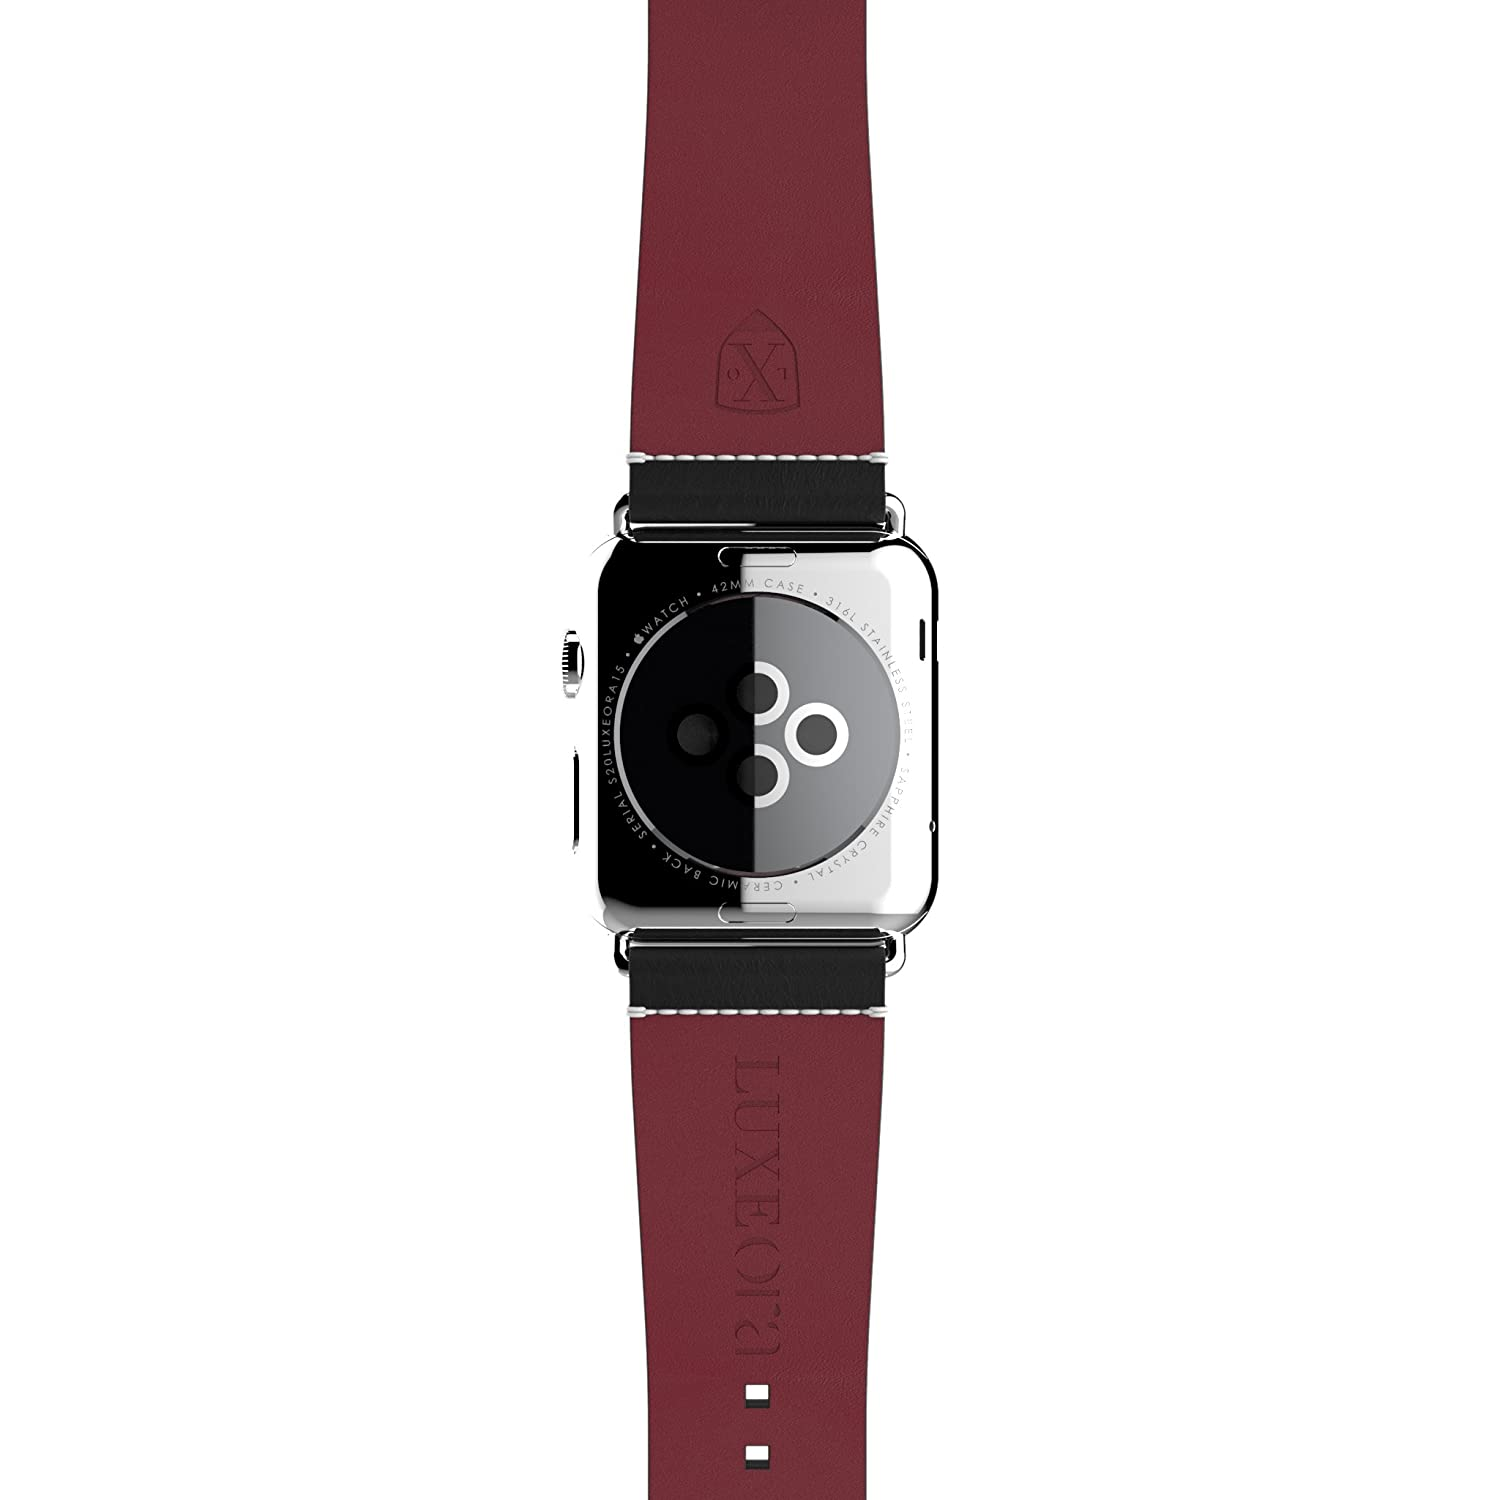 f4038602798 Amazon.com  LUXEORA Element Leather Band Strap with Polished Stainless  Steel Buckle - 44 42mm - Onyx Black and Red - Compatible with Apple Watch  Series 4 3 ...